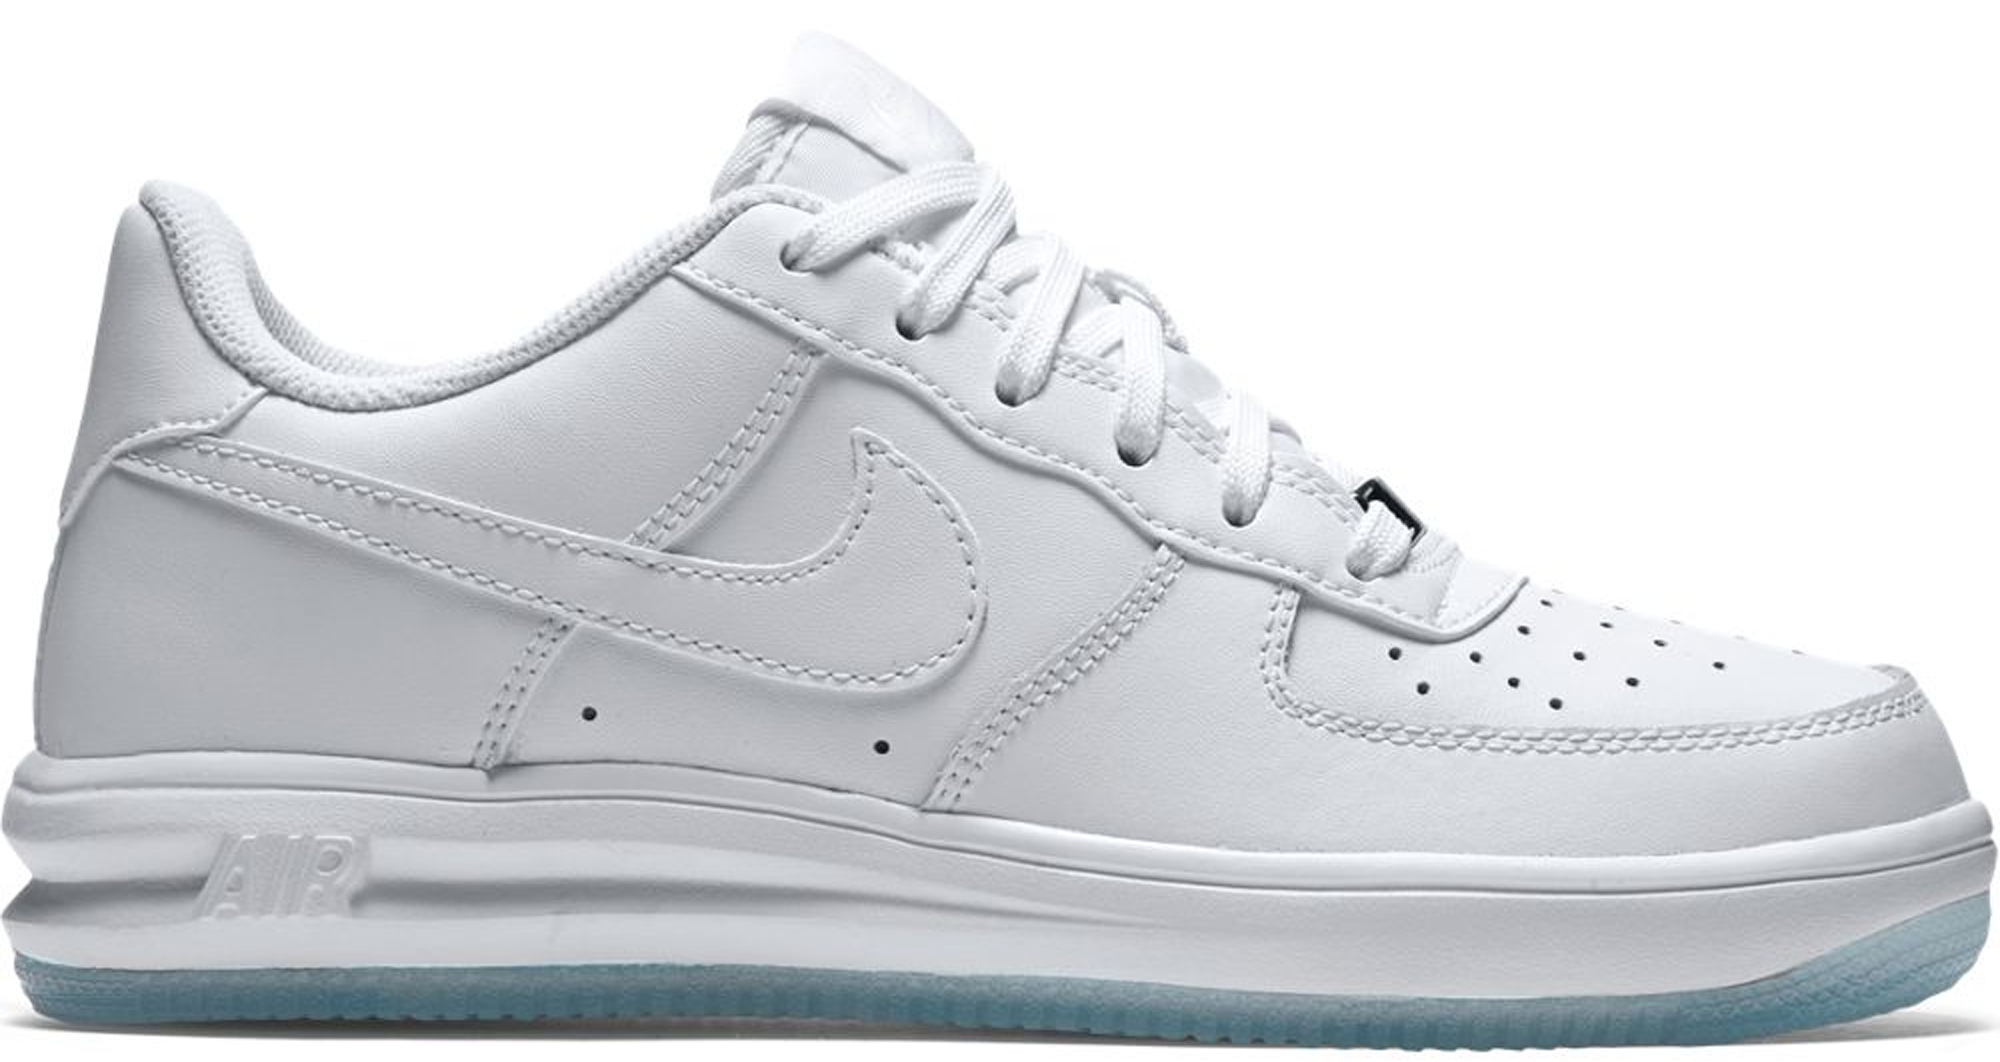 Nike Lunar Force 1 Low White Ice (GS